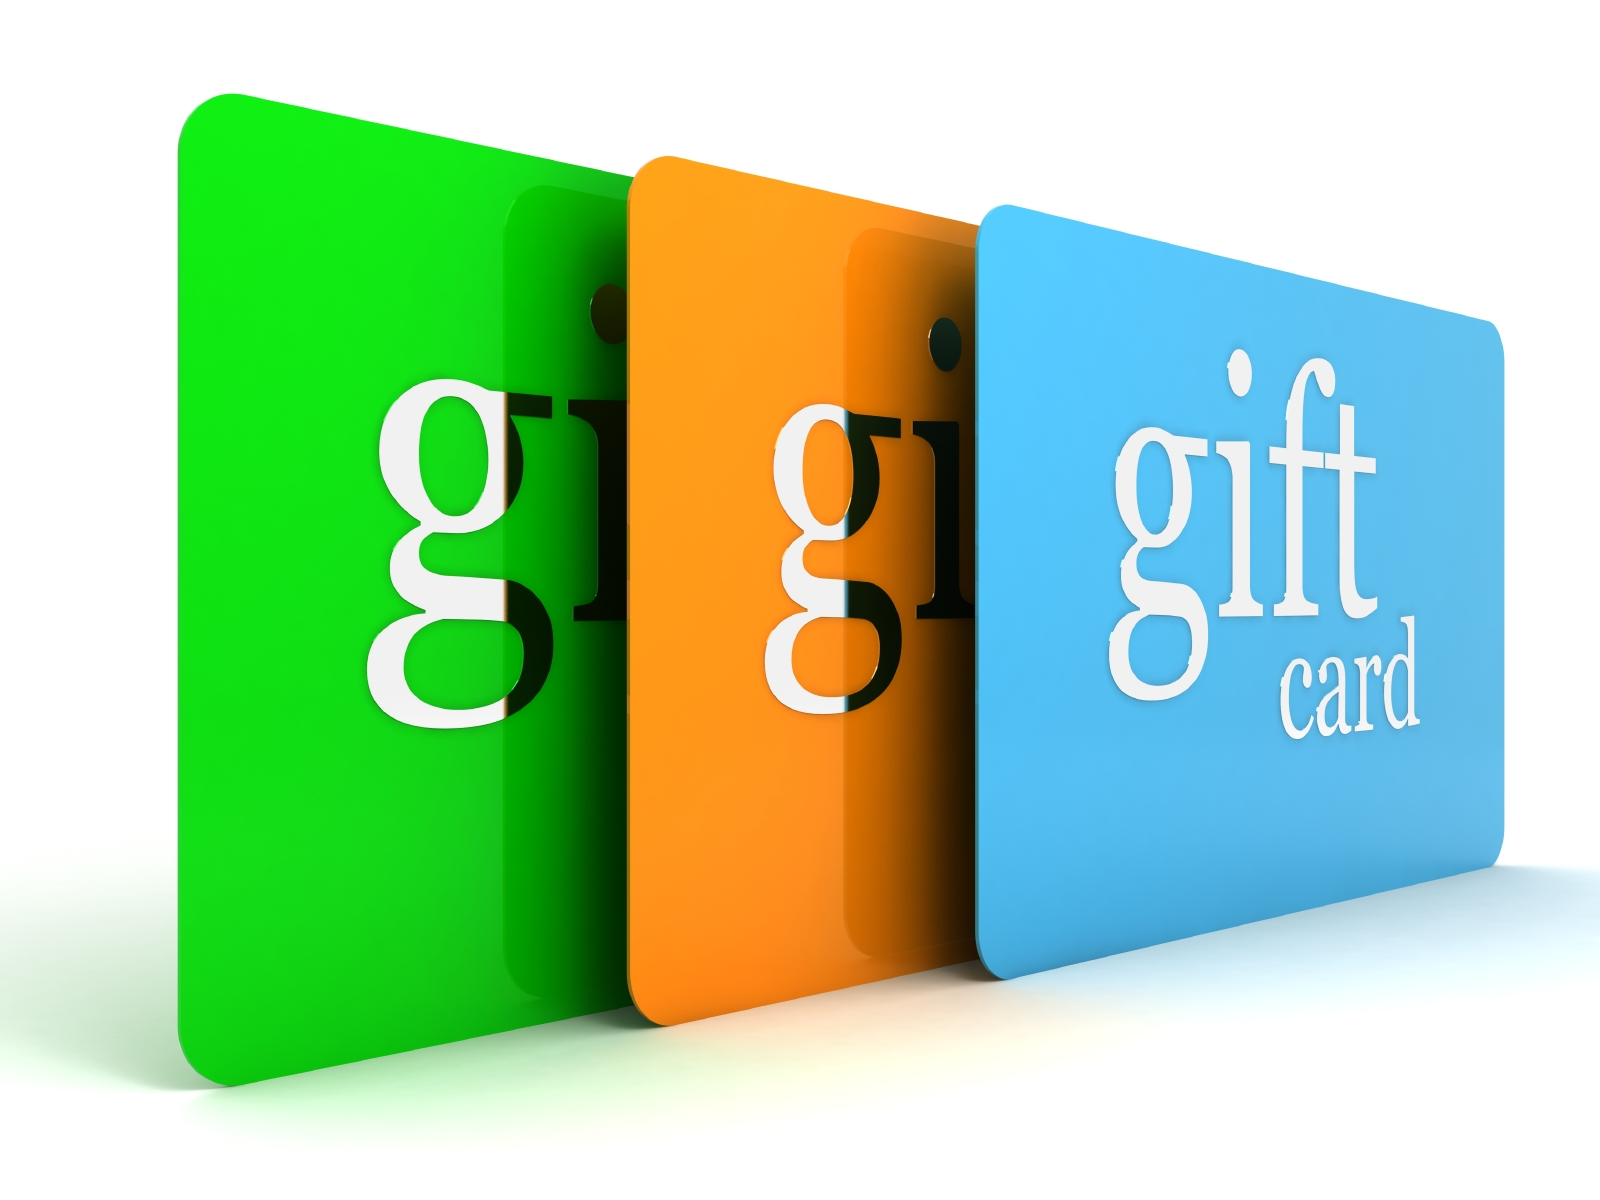 American Express does not ship Gift Cards or Business Gift Cards to the states of VT or HI. For questions about American Express Gift Cards or Business Gift Cards, please use the Search box located in the upper right corner.